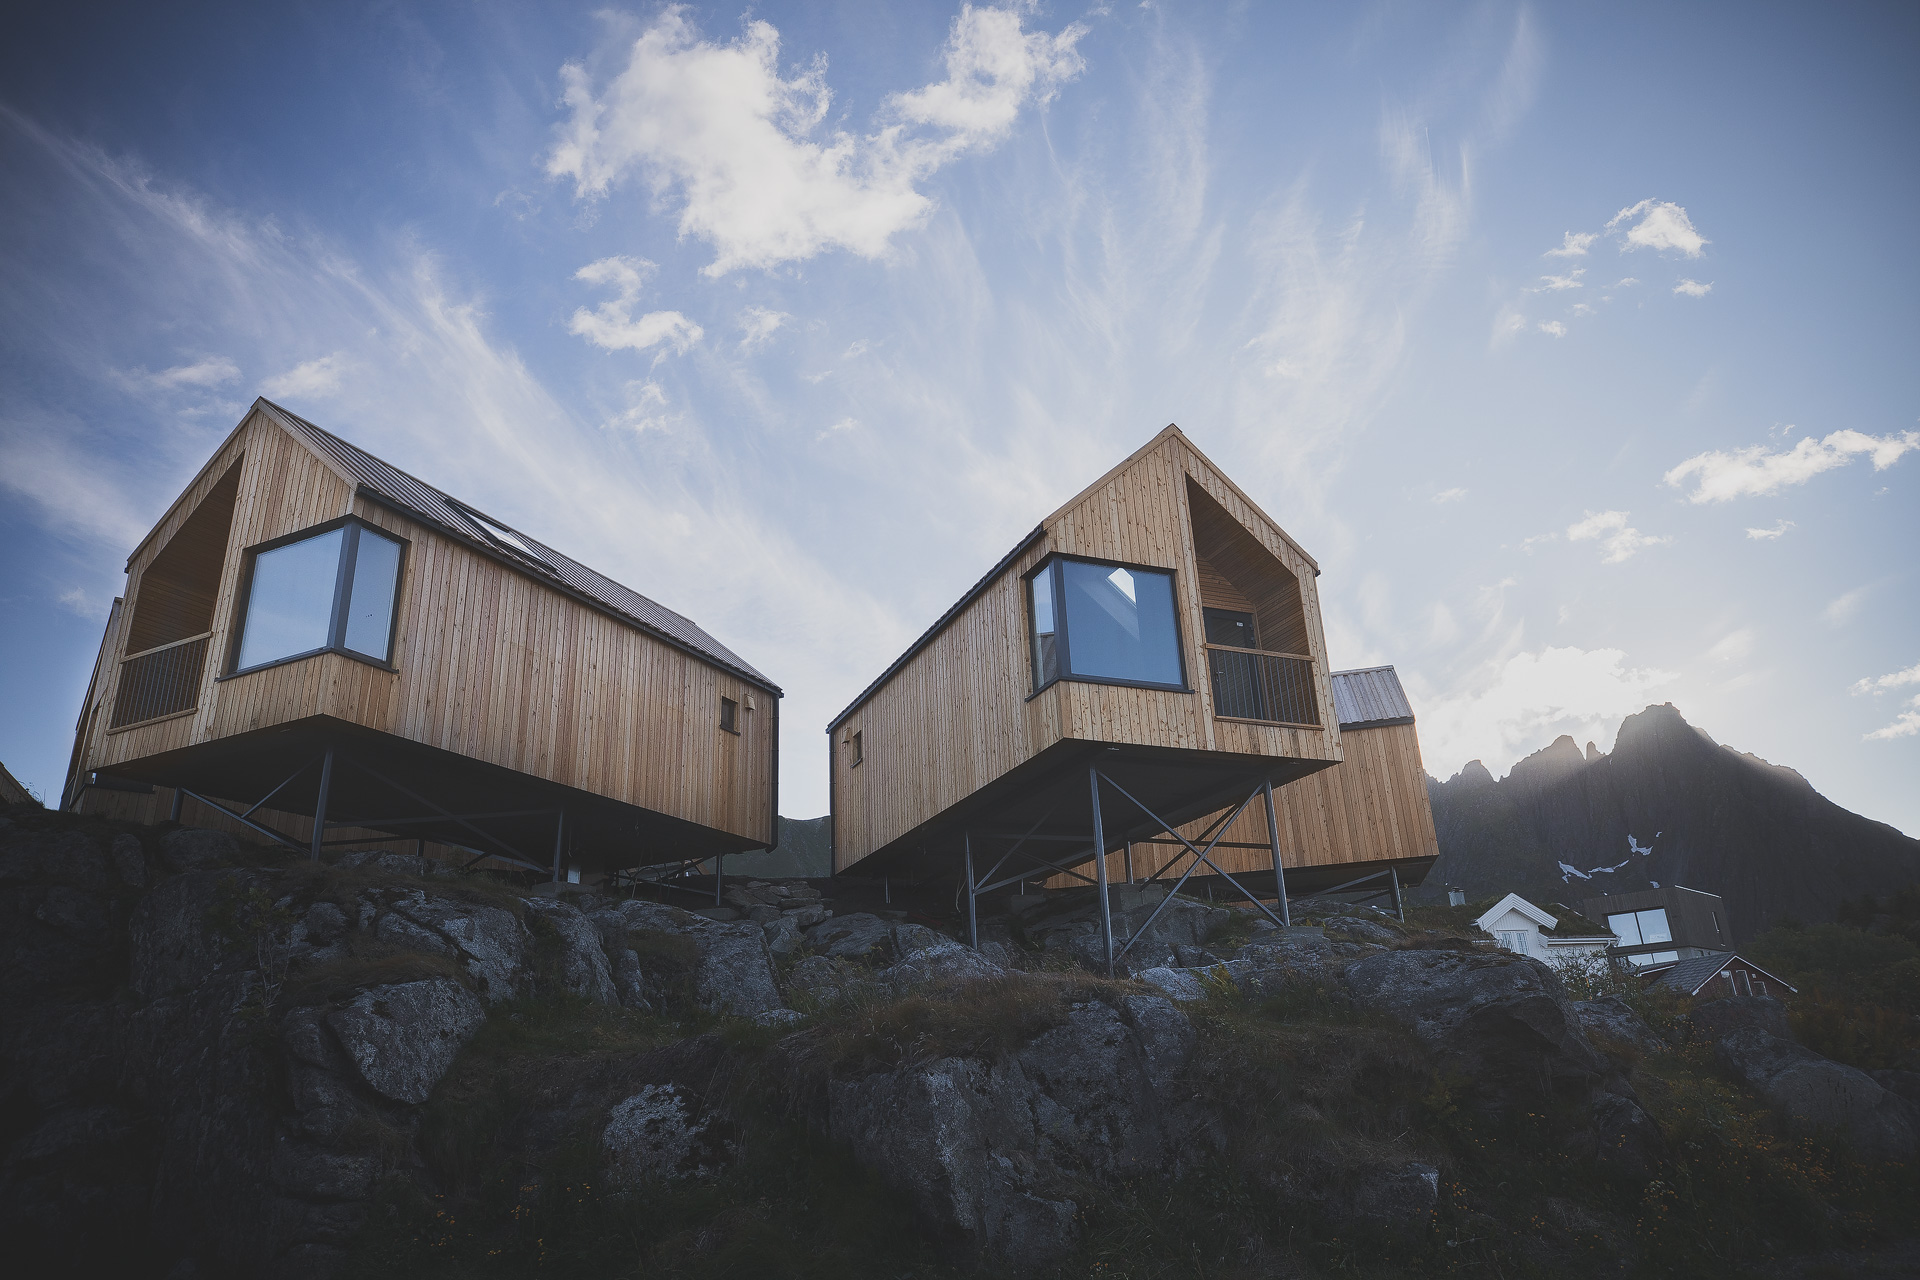 Accommodation in the Lofoten Islands